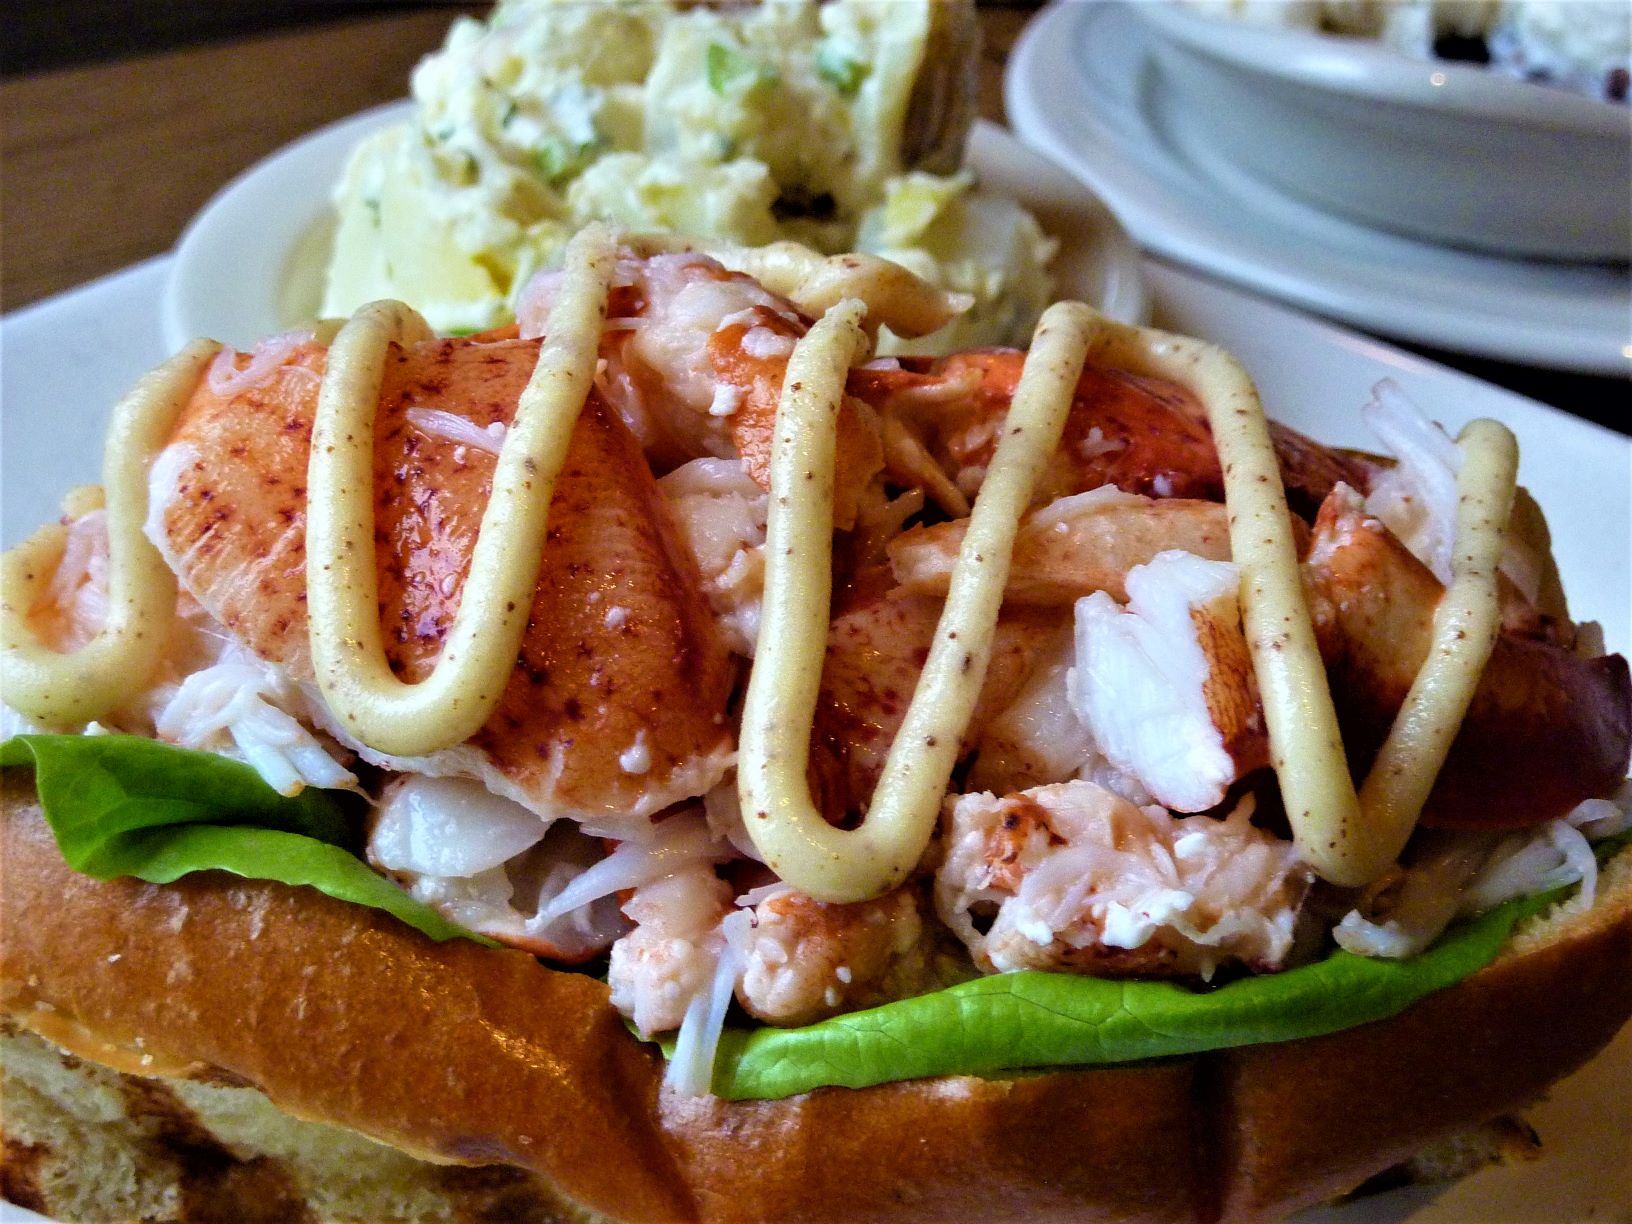 Lobster roll from DiMillo's in Portland, Maine.